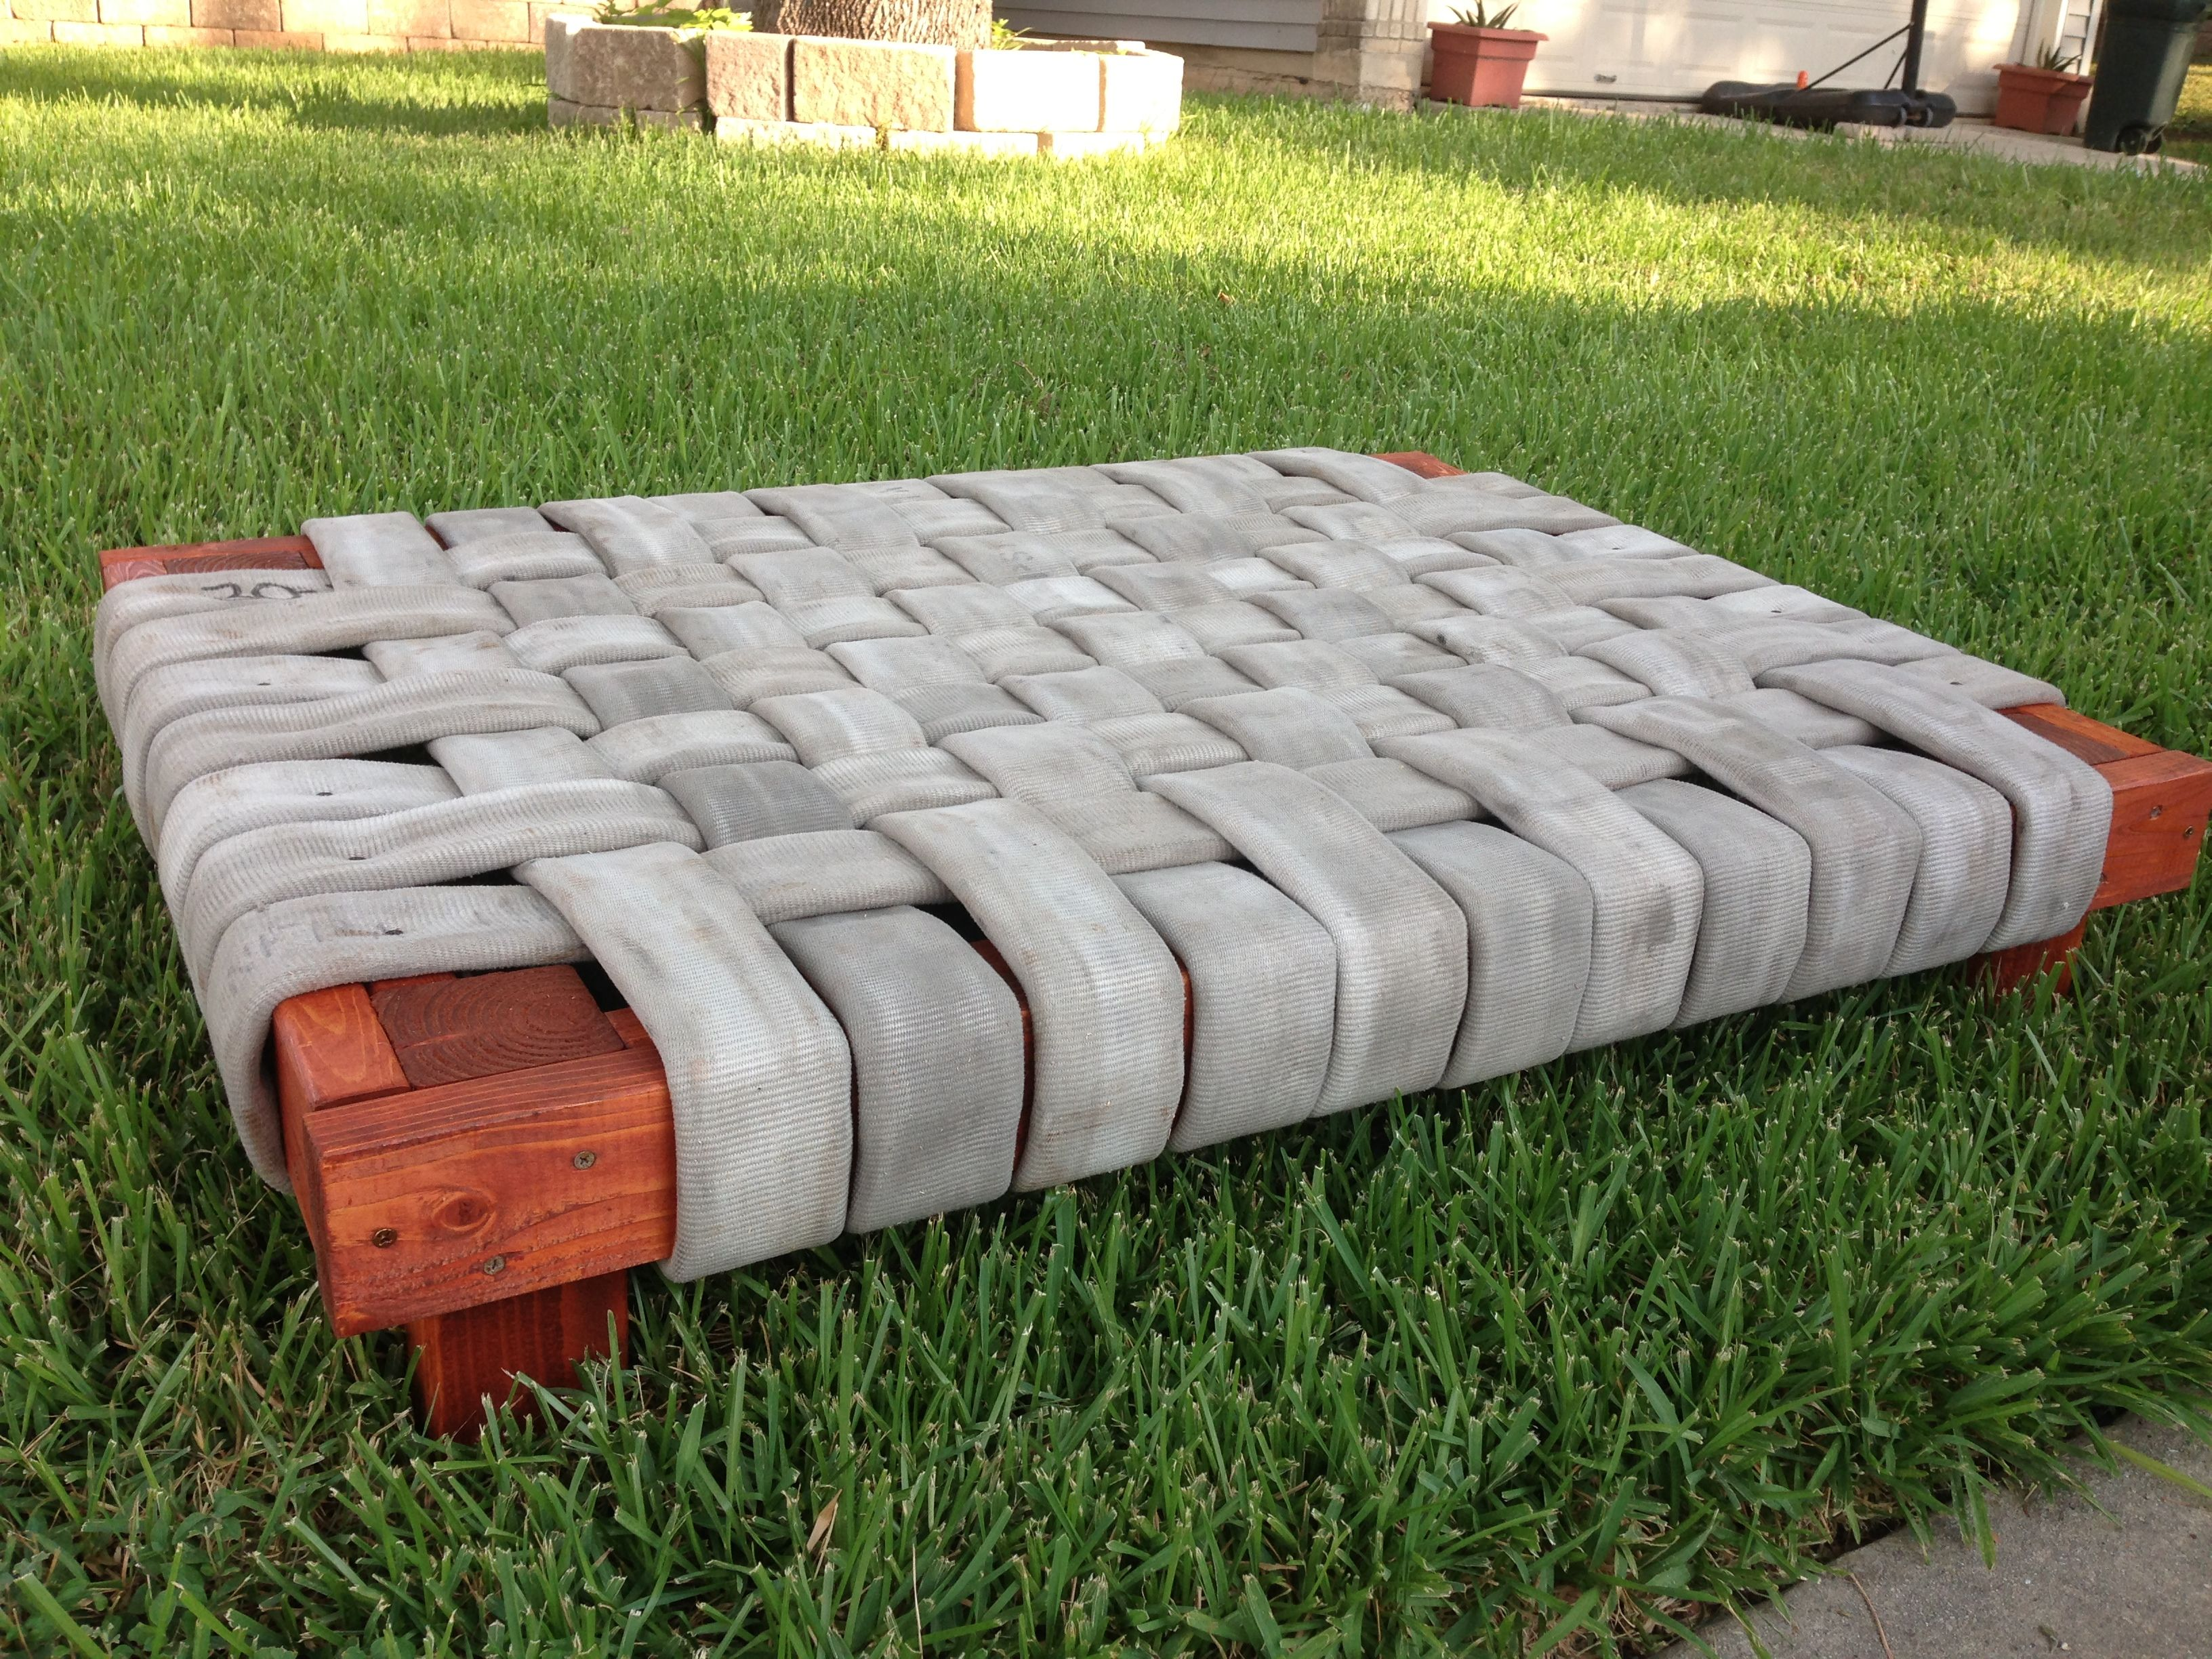 Used fire hose dog bed!!!! Dog bed, Diy dog bed, Diy dog